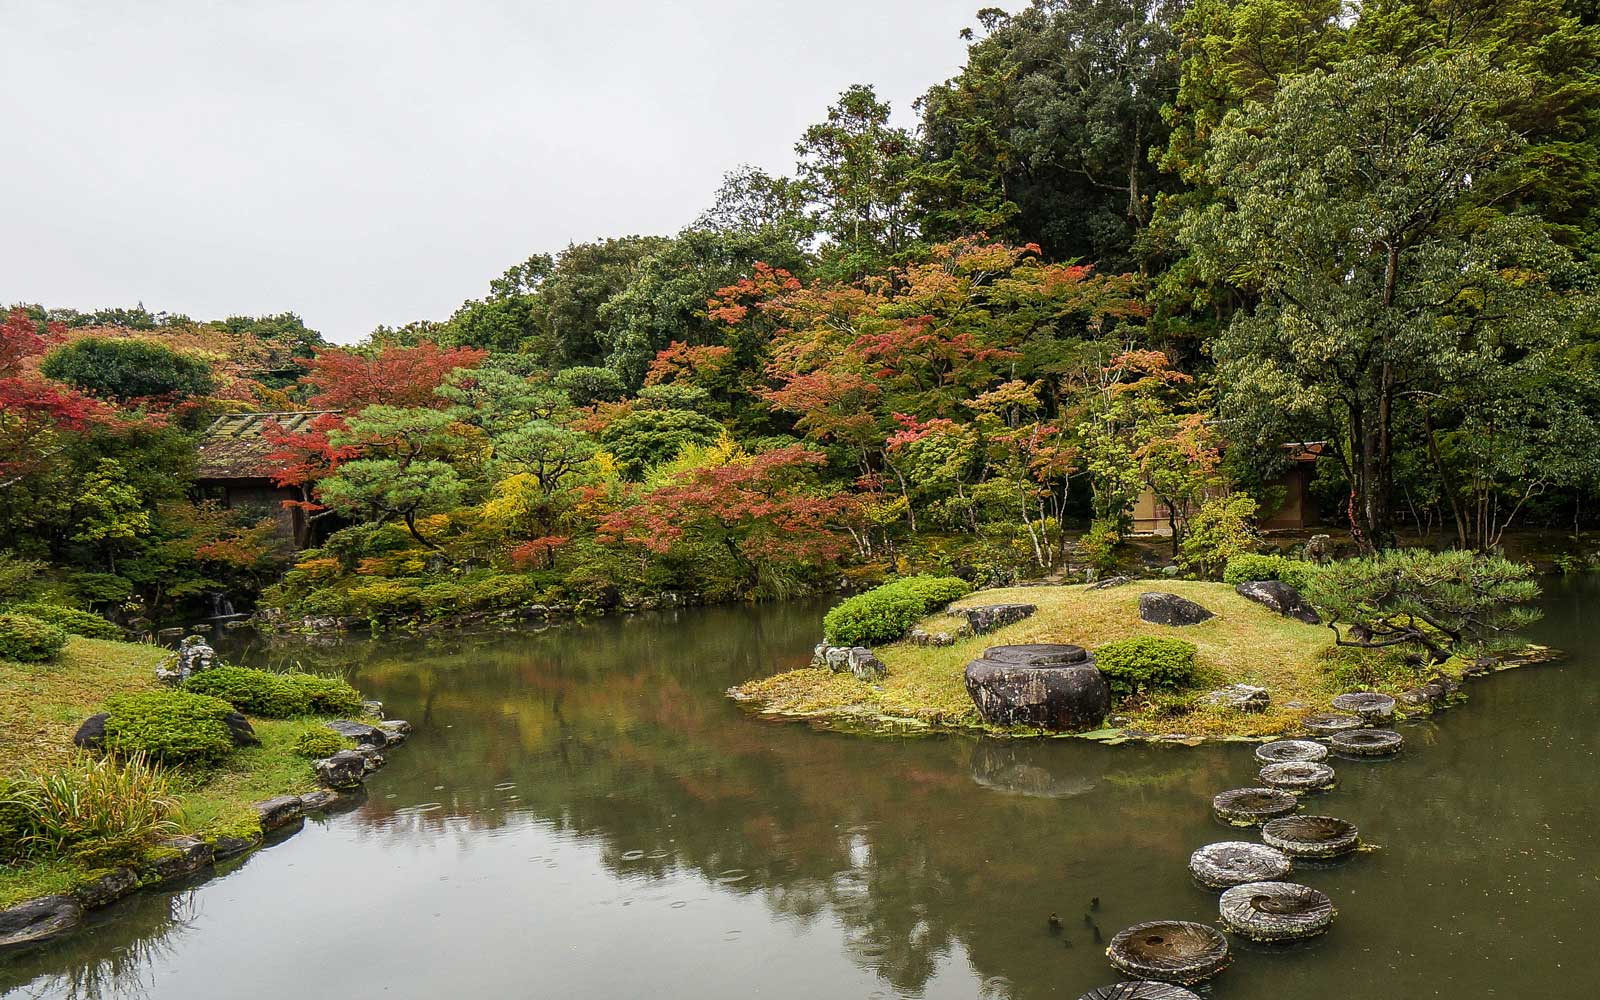 Isuien Garden is located in Nara, Japan. This name is derived from the fact that the pond are fed by the nearby Yoshikigawa River.